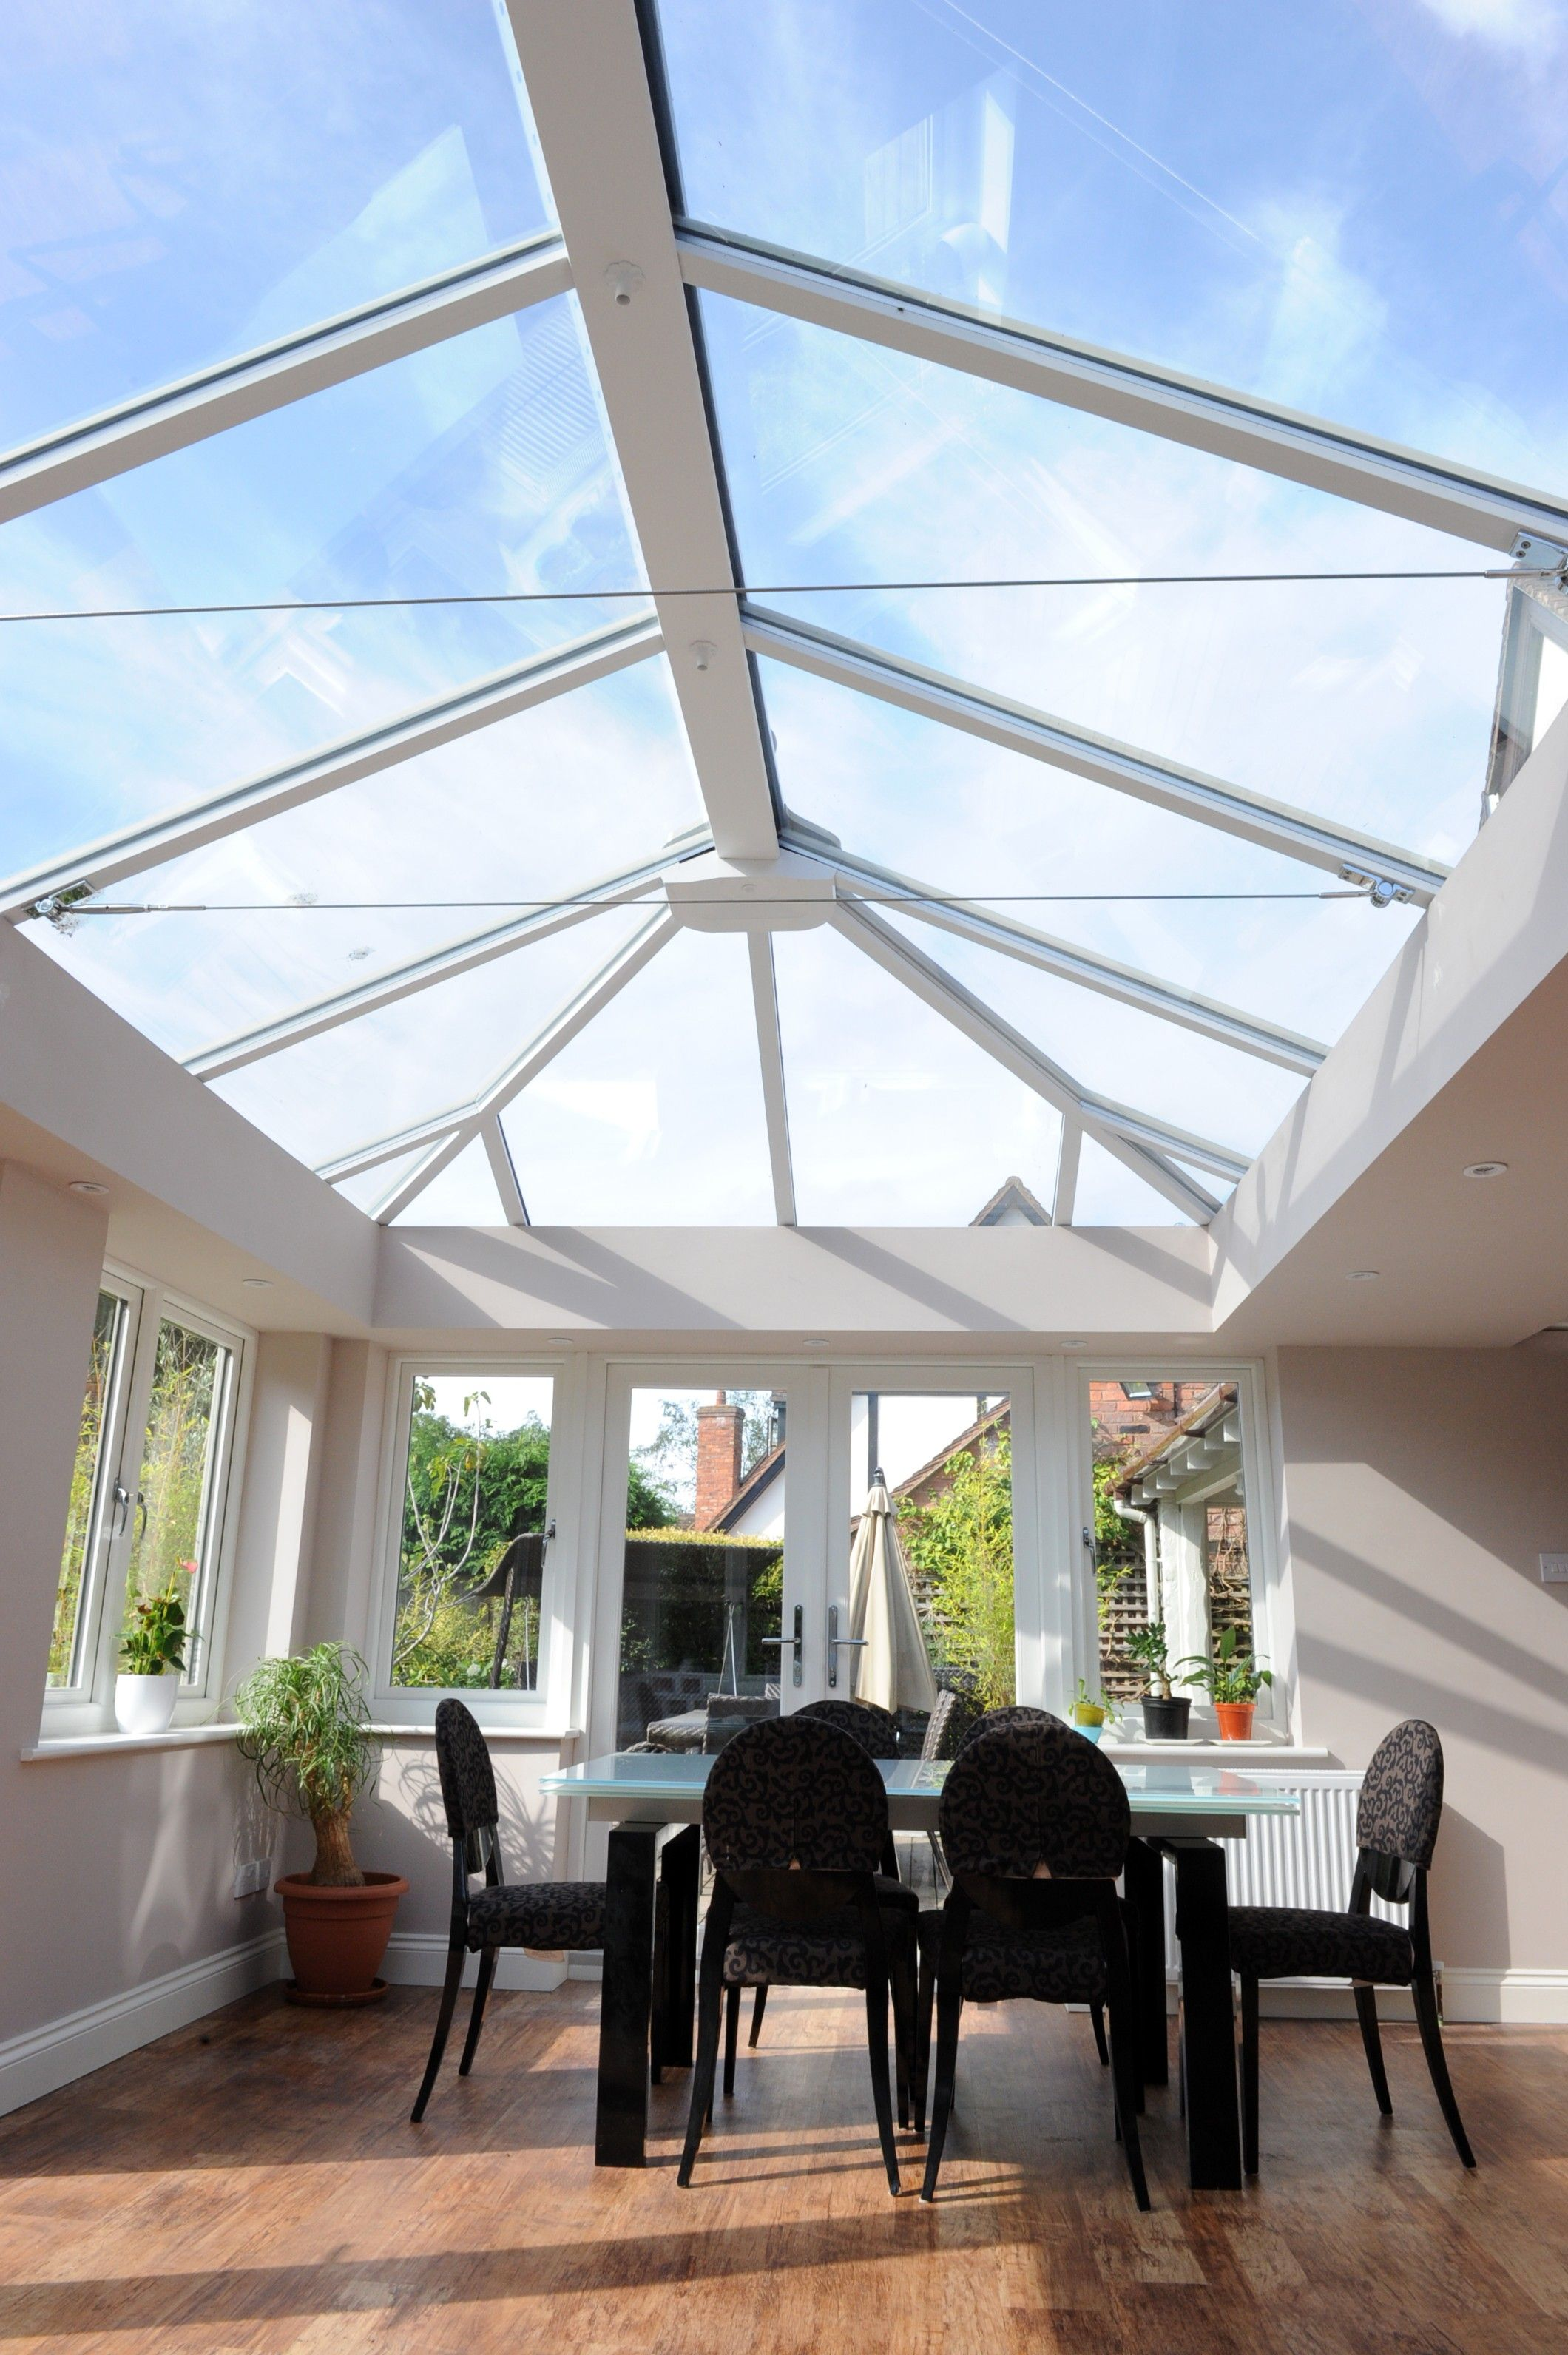 An Ultraframe Conservatory with a Glass Roof | Glass roof ...